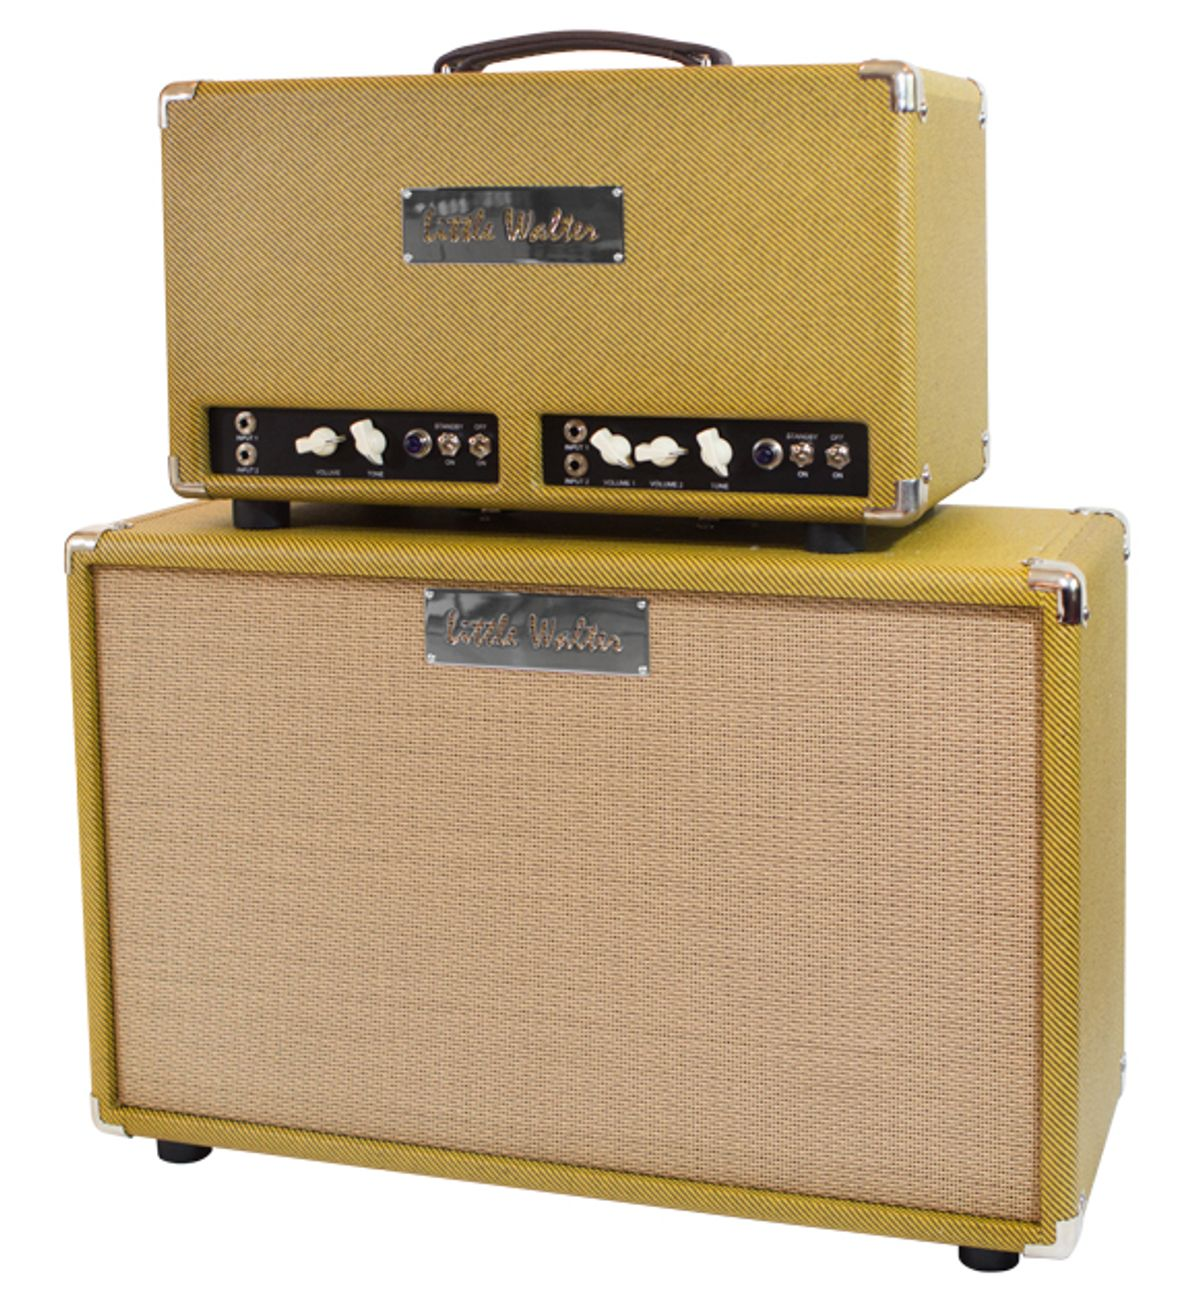 Little Walter Twin 50/22 Amp Review